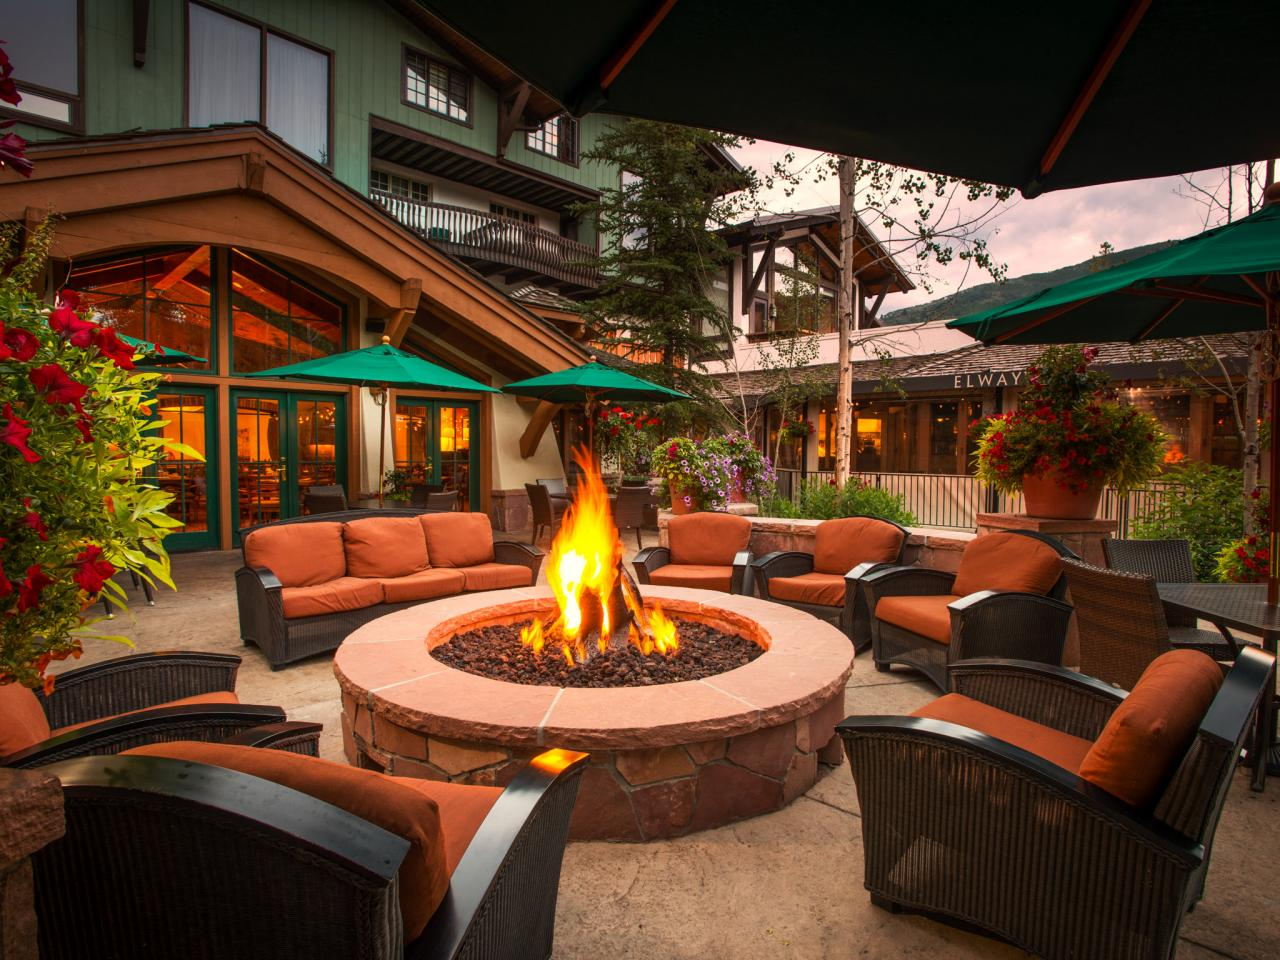 50 Best Outdoor Fire Pit Design Ideas for 2020 on Fire Pit Design  id=77552